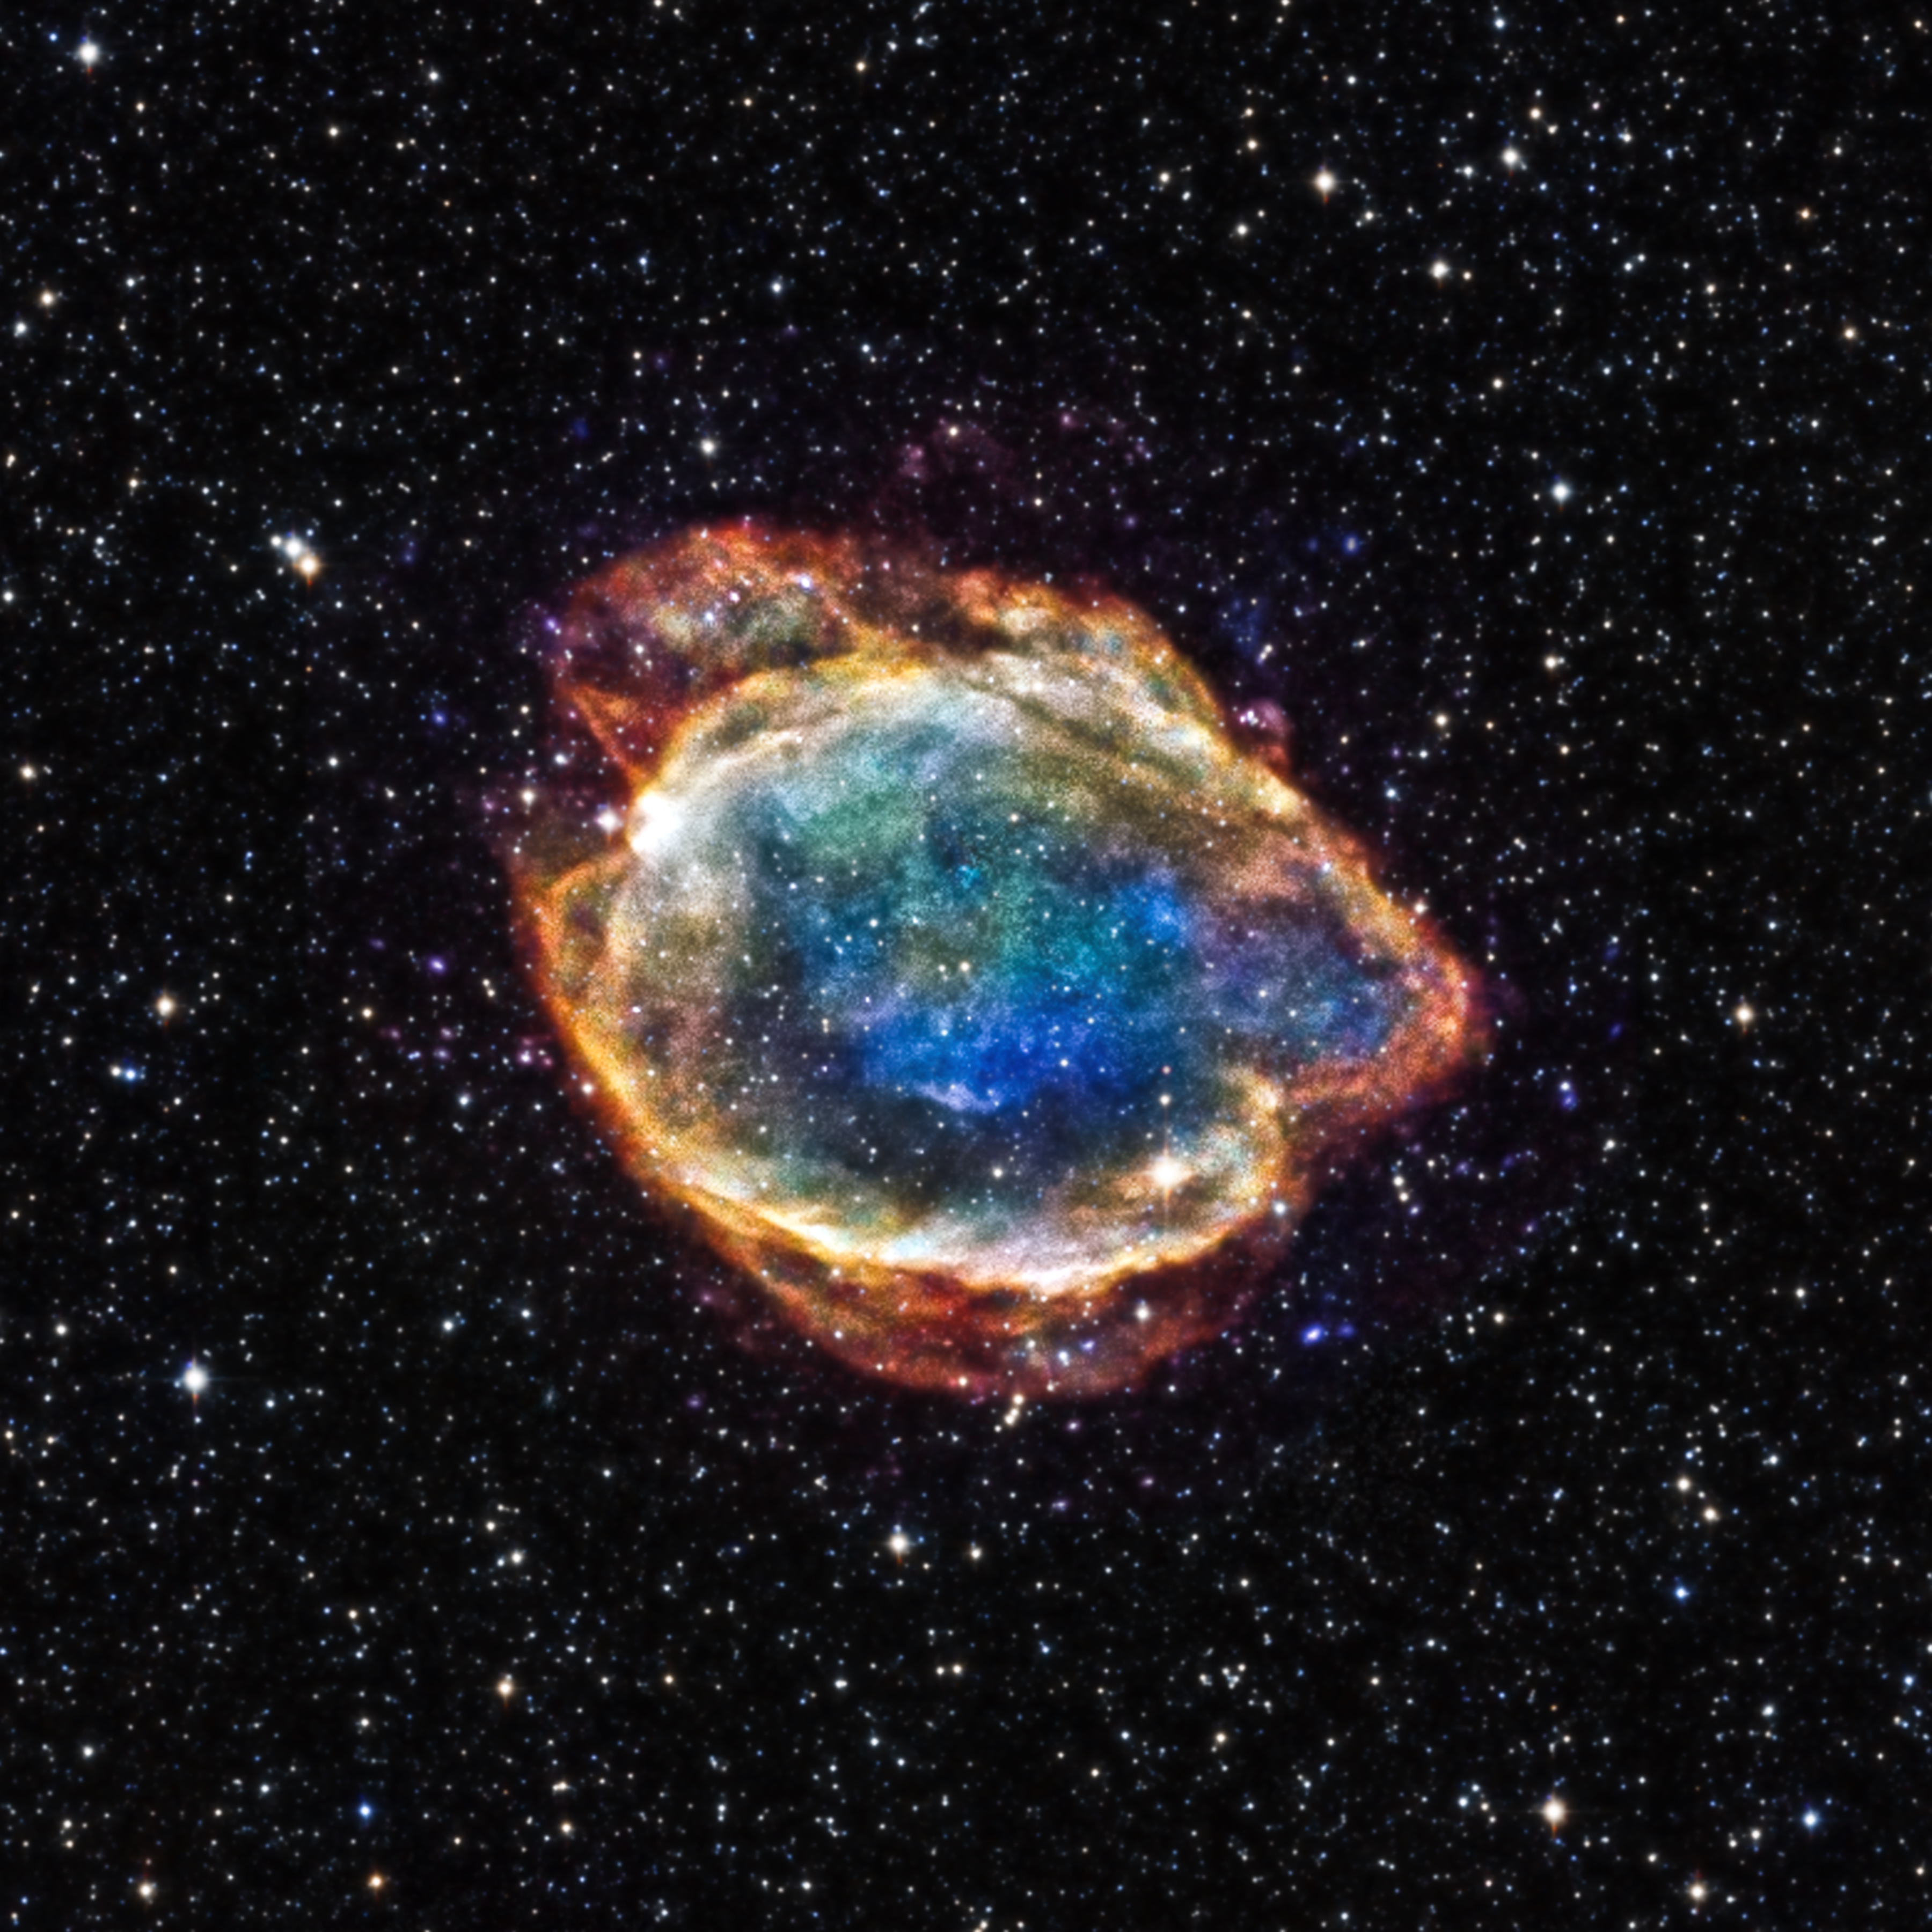 a beautiful end to a star s life nasa chandra x ray middot image of g299